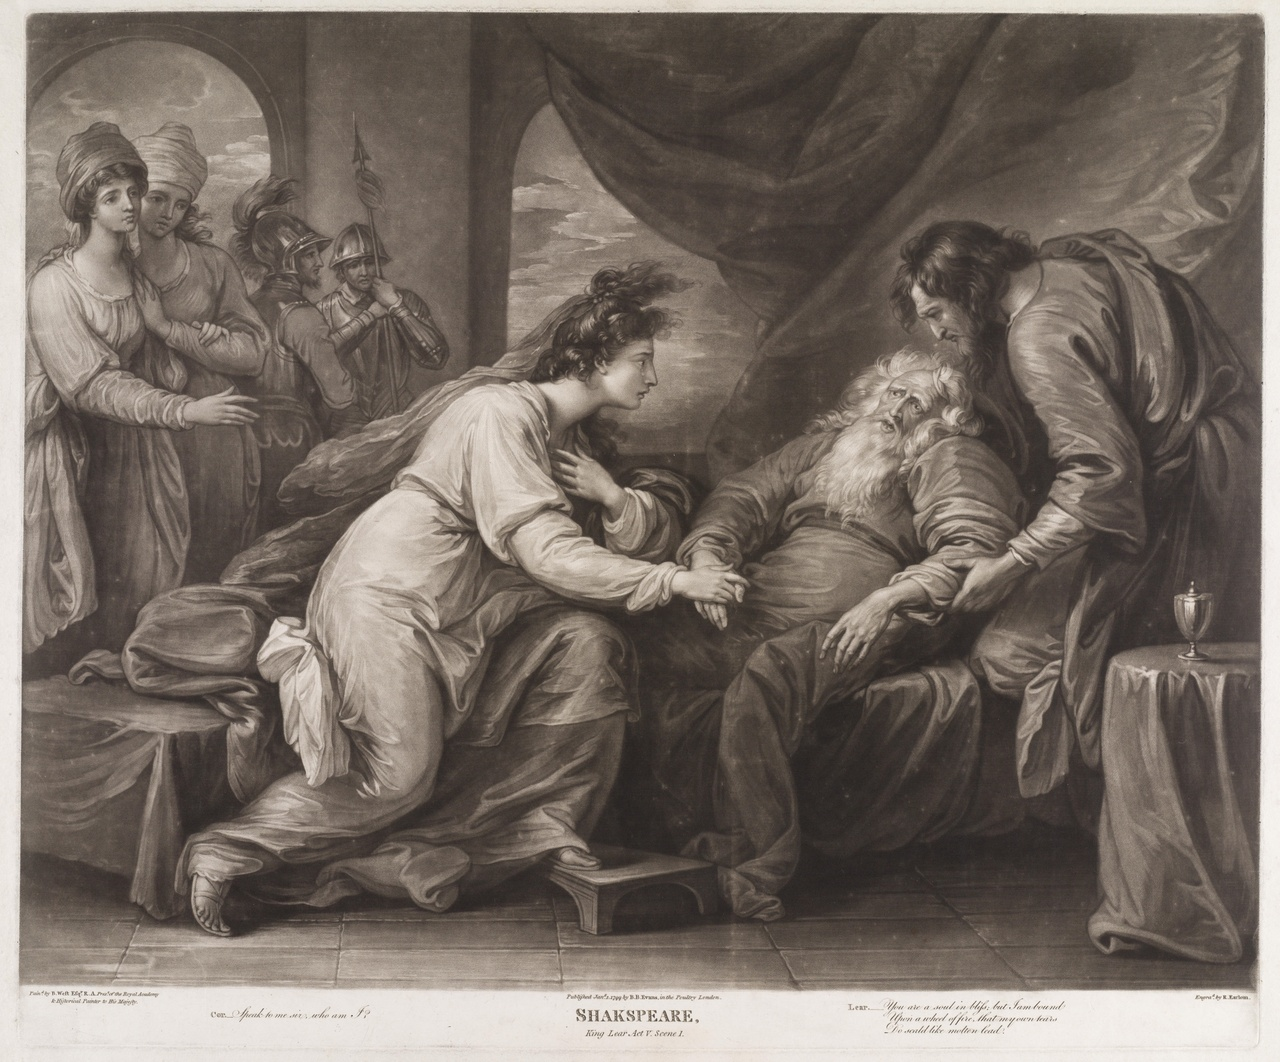 suffering in king lear Let's discuss themes in king lear right now main themes include king lear and eyesight, appearance vs reality in and the theme of blindness.